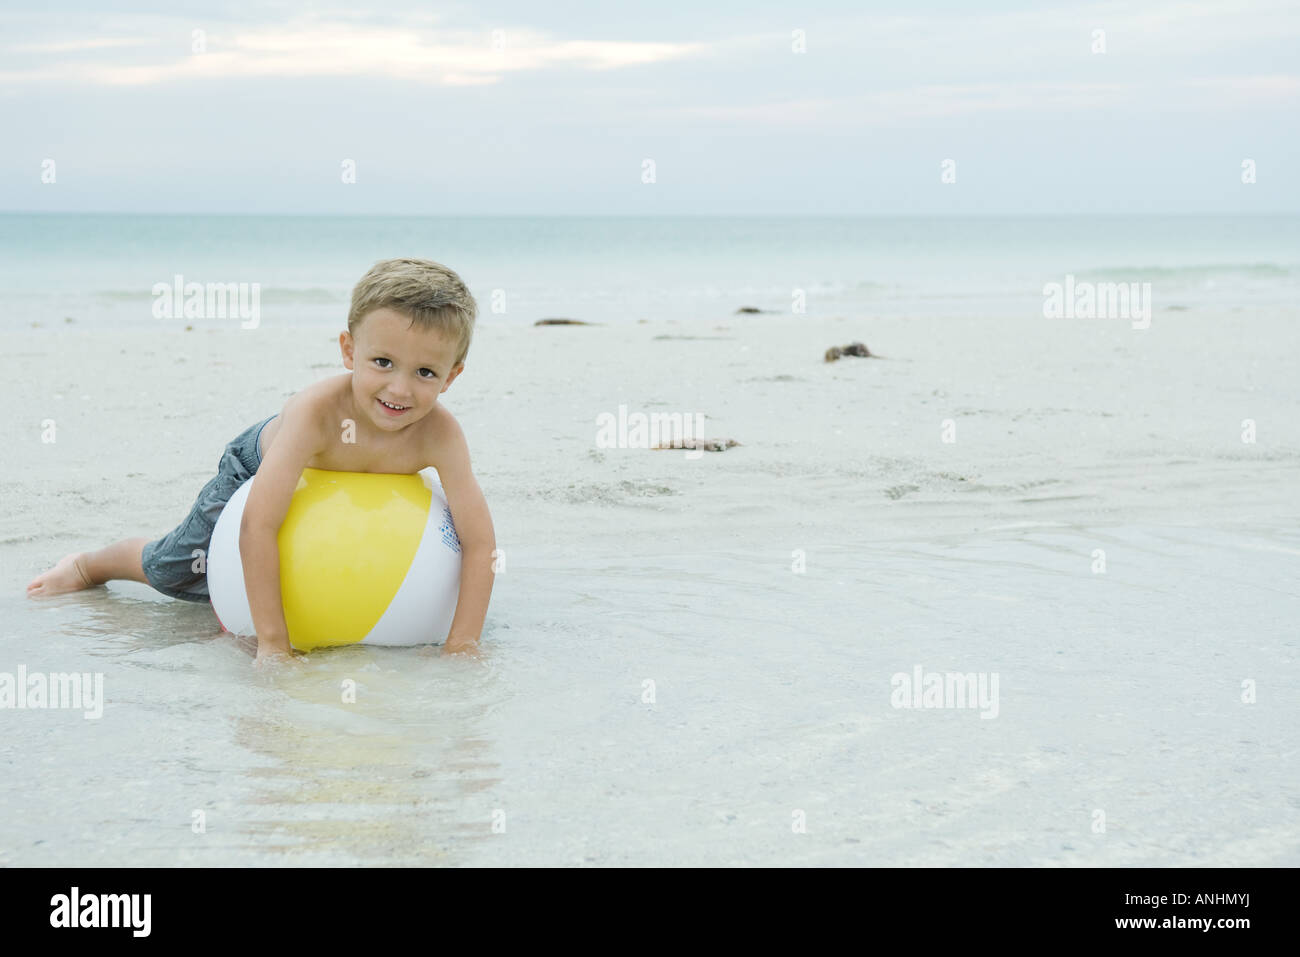 Little boy lying on beach ball, smiling at camera, full length - Stock Image